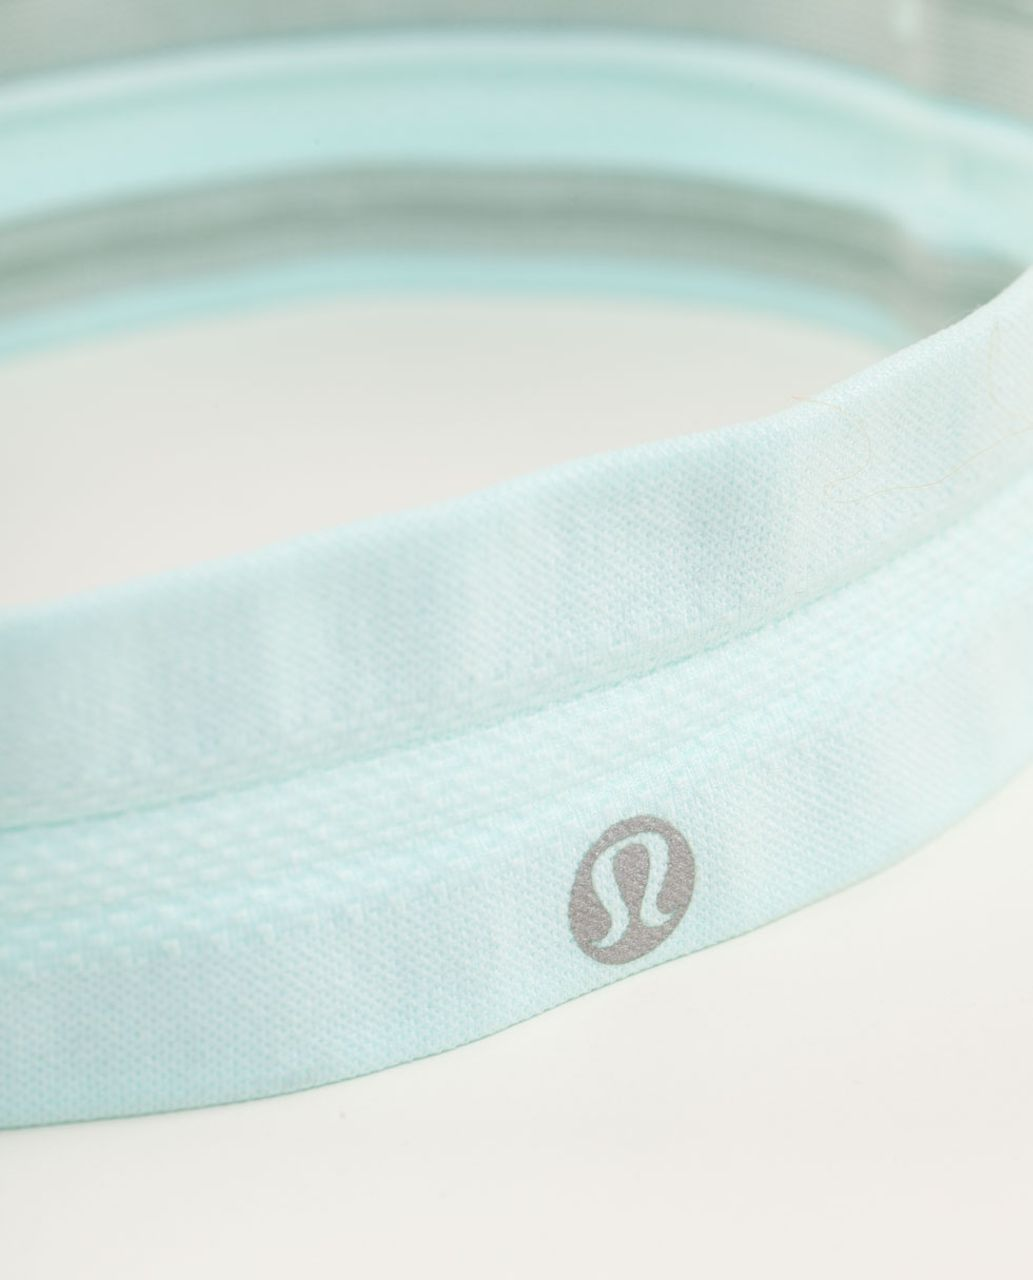 Lululemon Swiftly Headband - Aquamarine